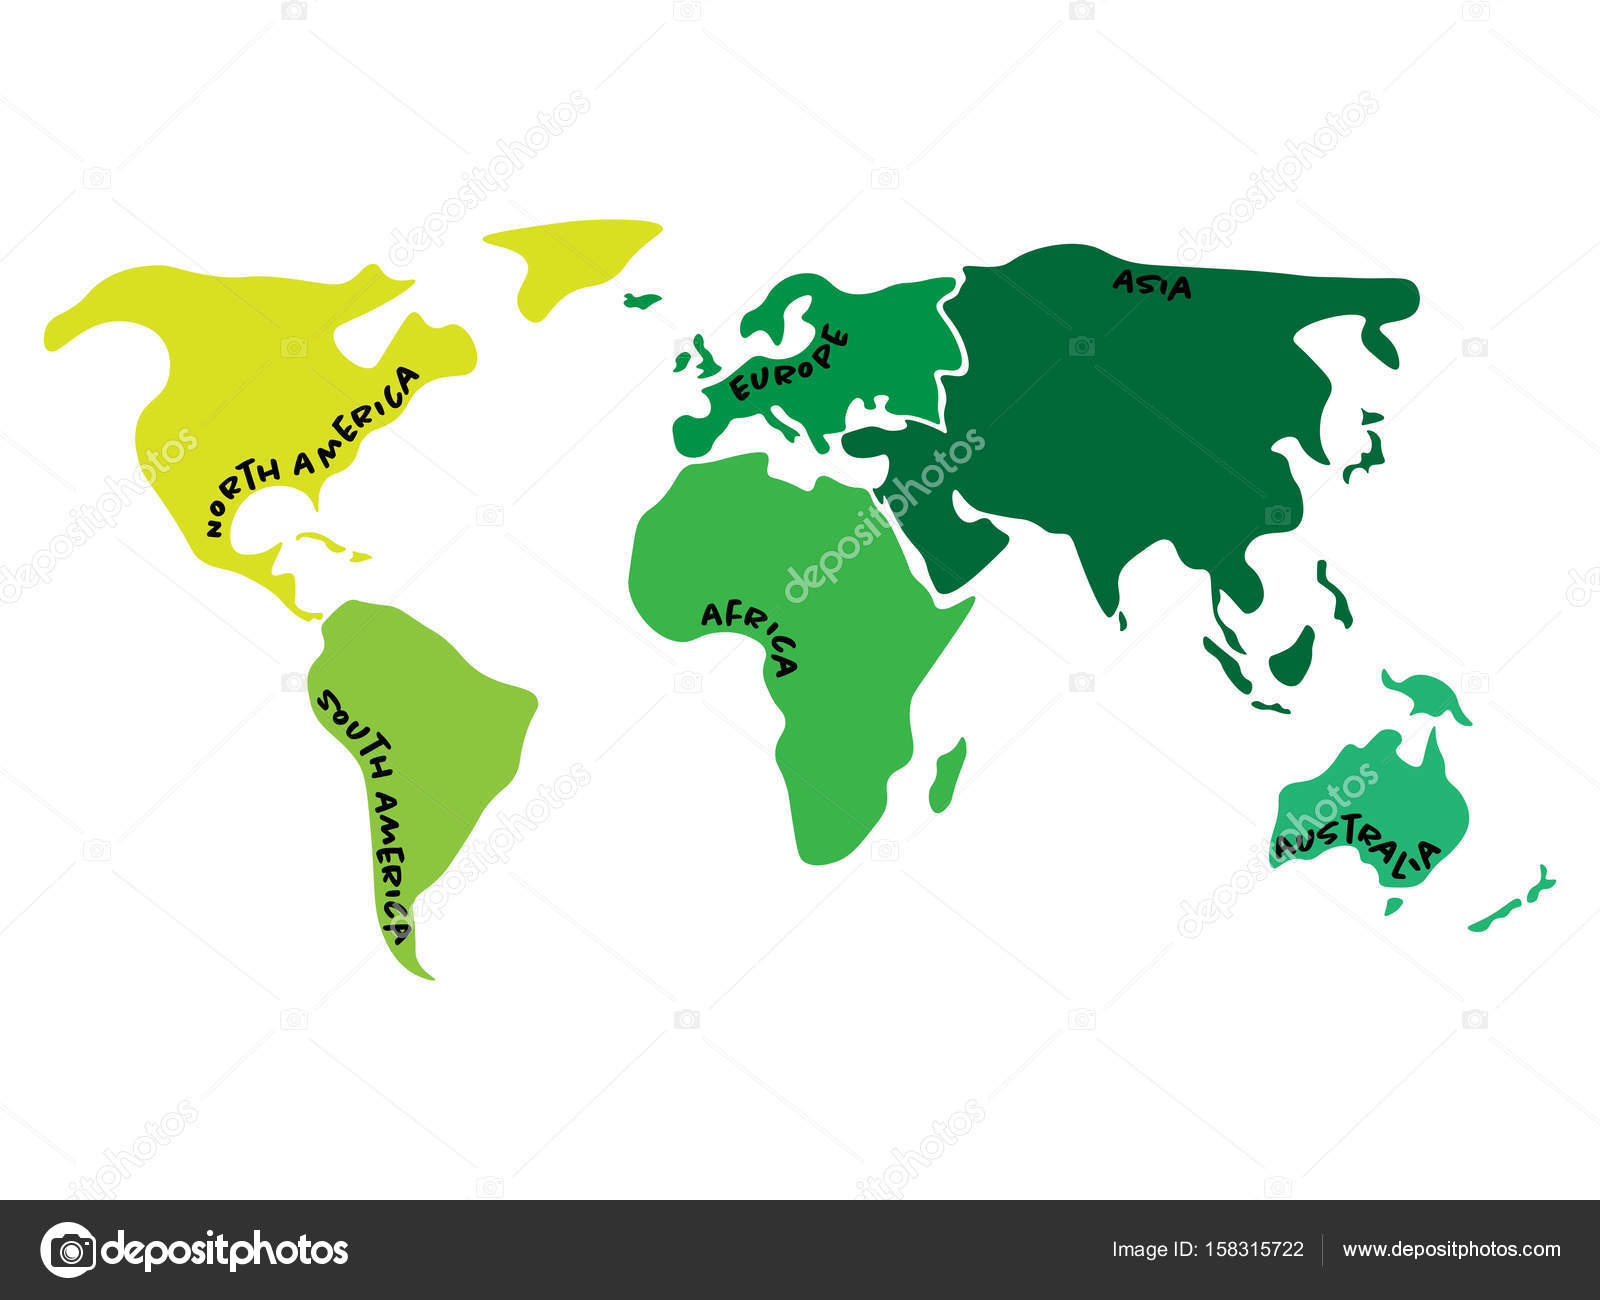 Multicolored world map divided to six continents in different colors multicolored world map divided to six continents in different colors north america south america africa europe asia and australia oceania gumiabroncs Image collections